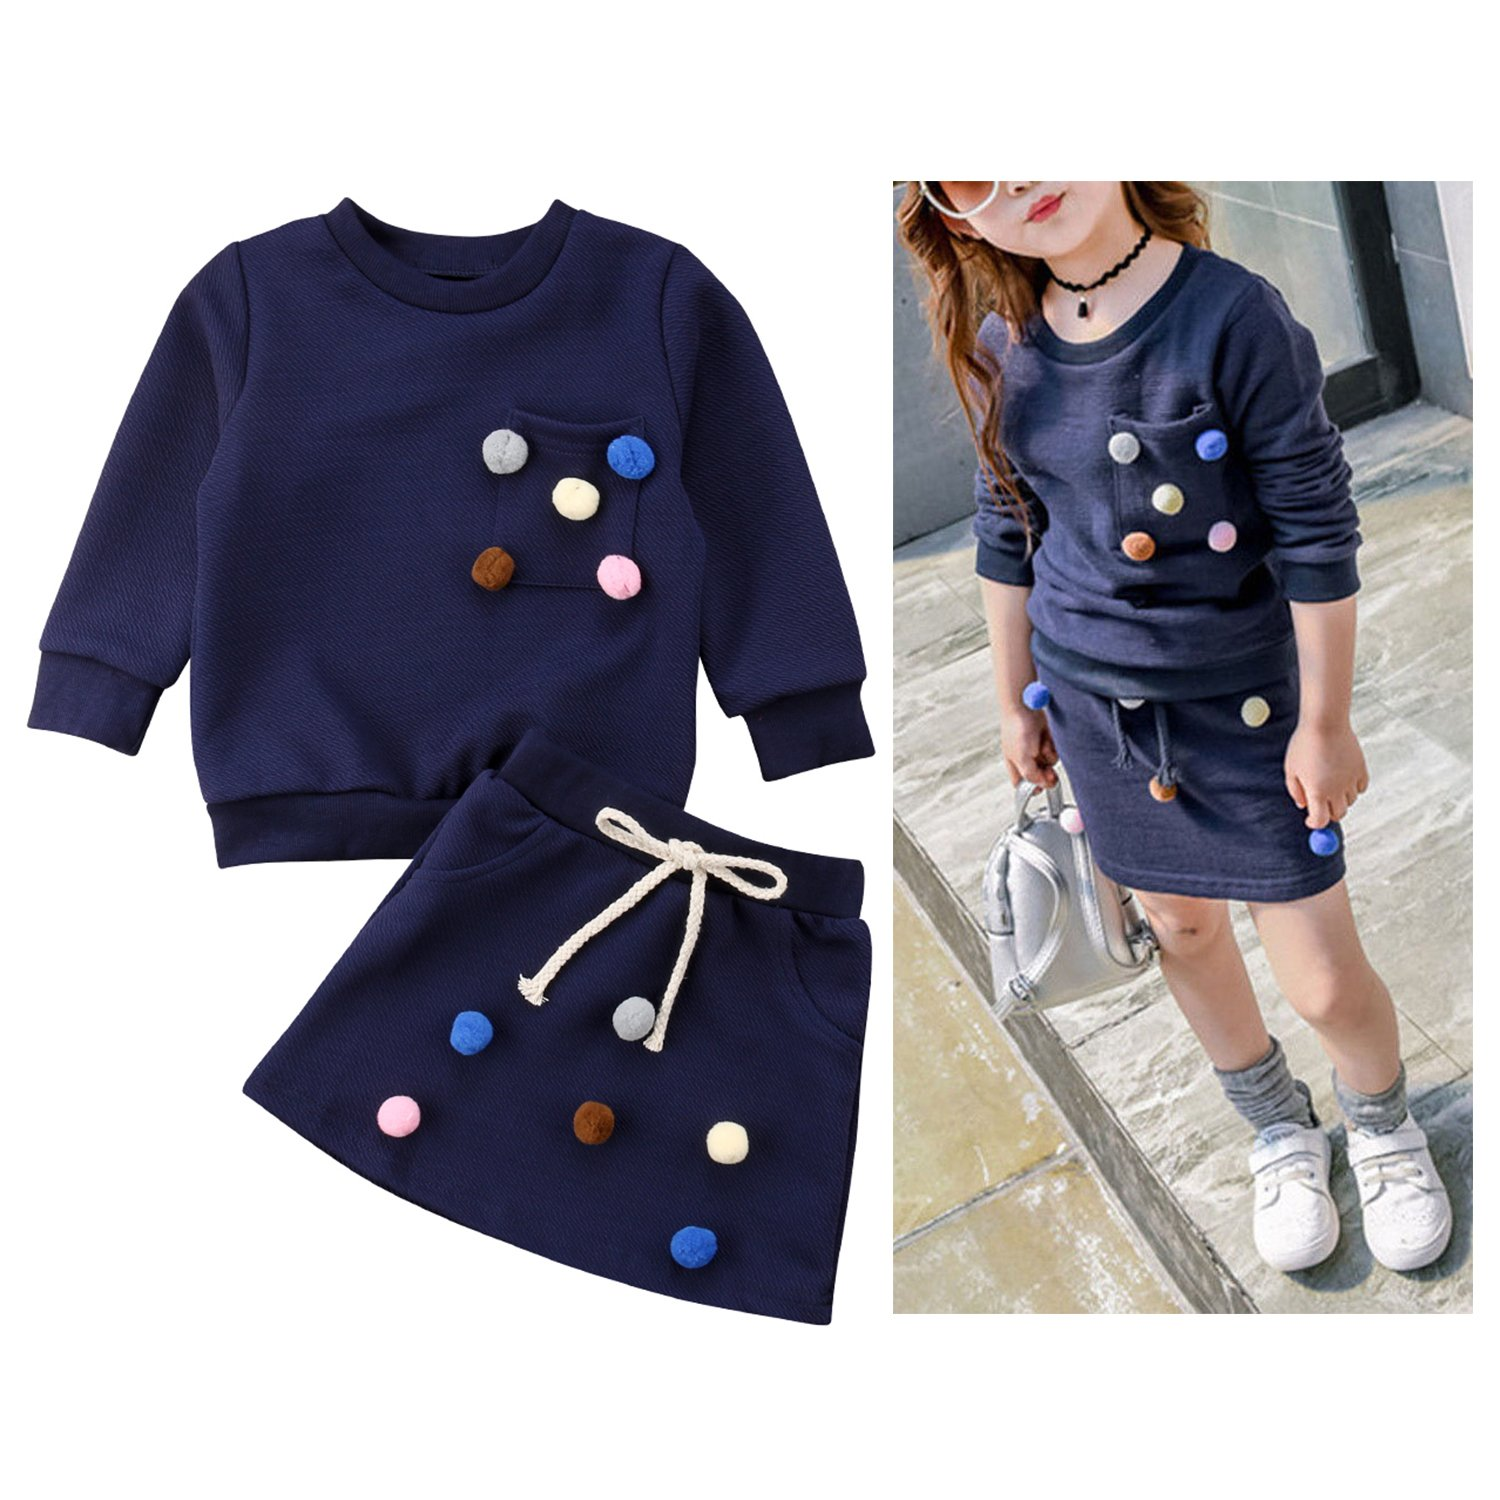 WIFORNT Toddler Baby Girl Long Sleeve Pom Pom Pullover Sweatshirt Top Skirt Outfits